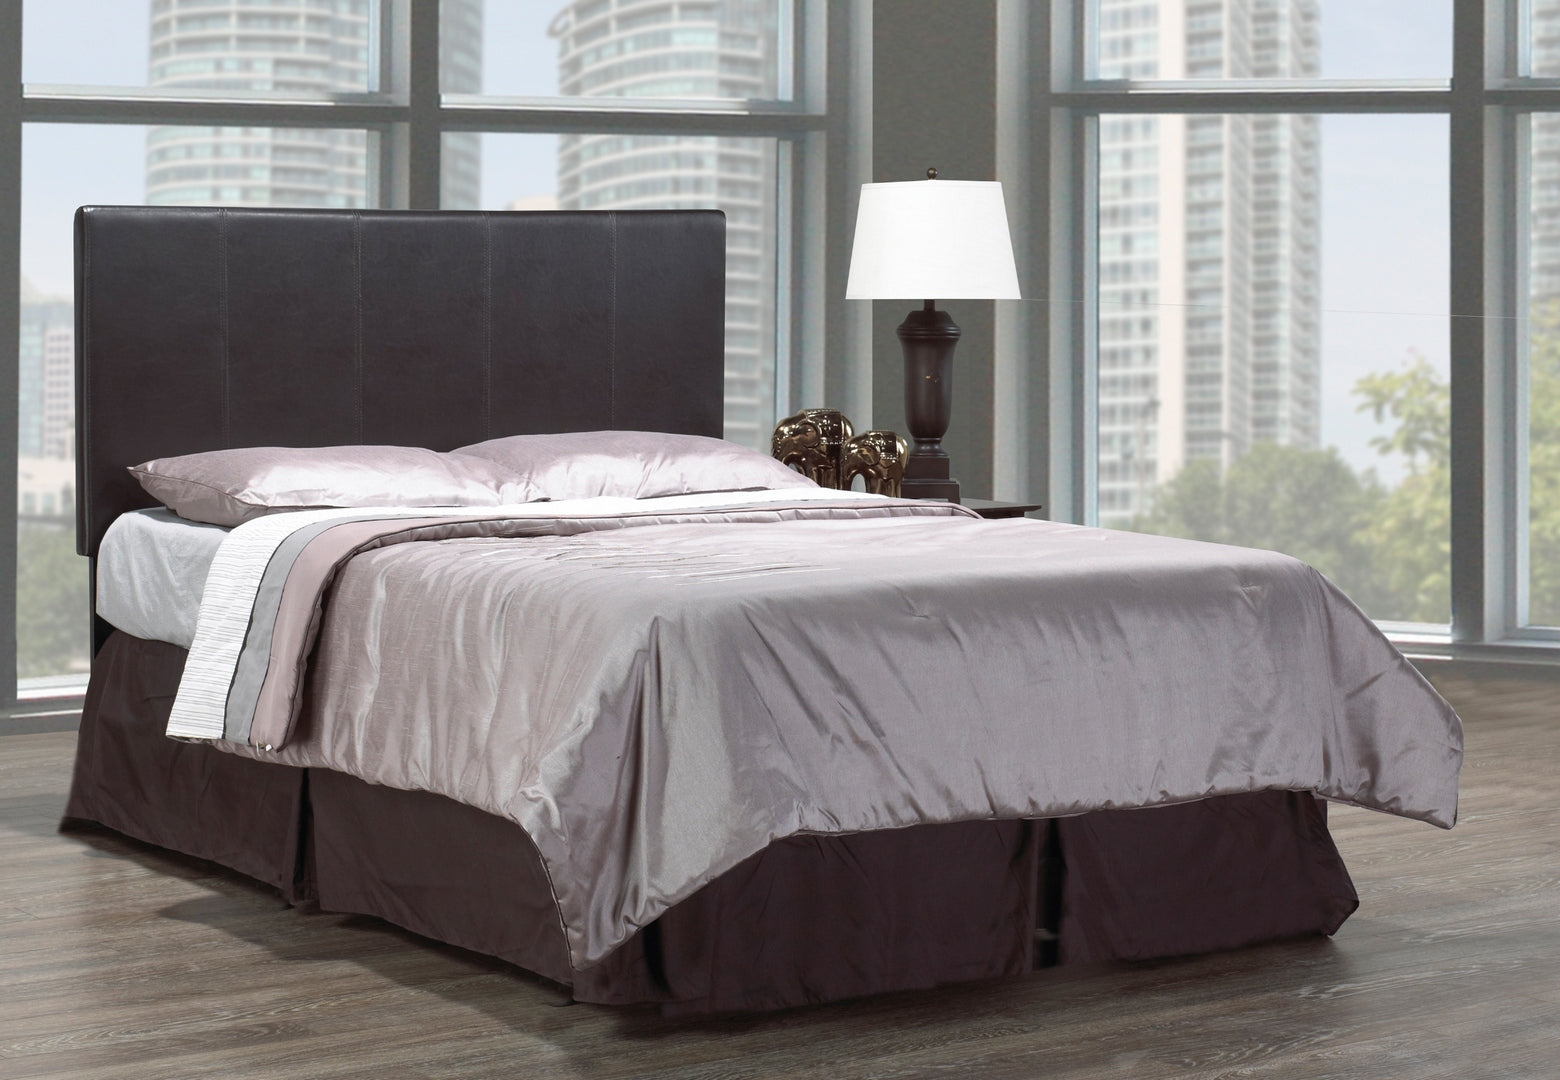 136 Upholstered Headboard only